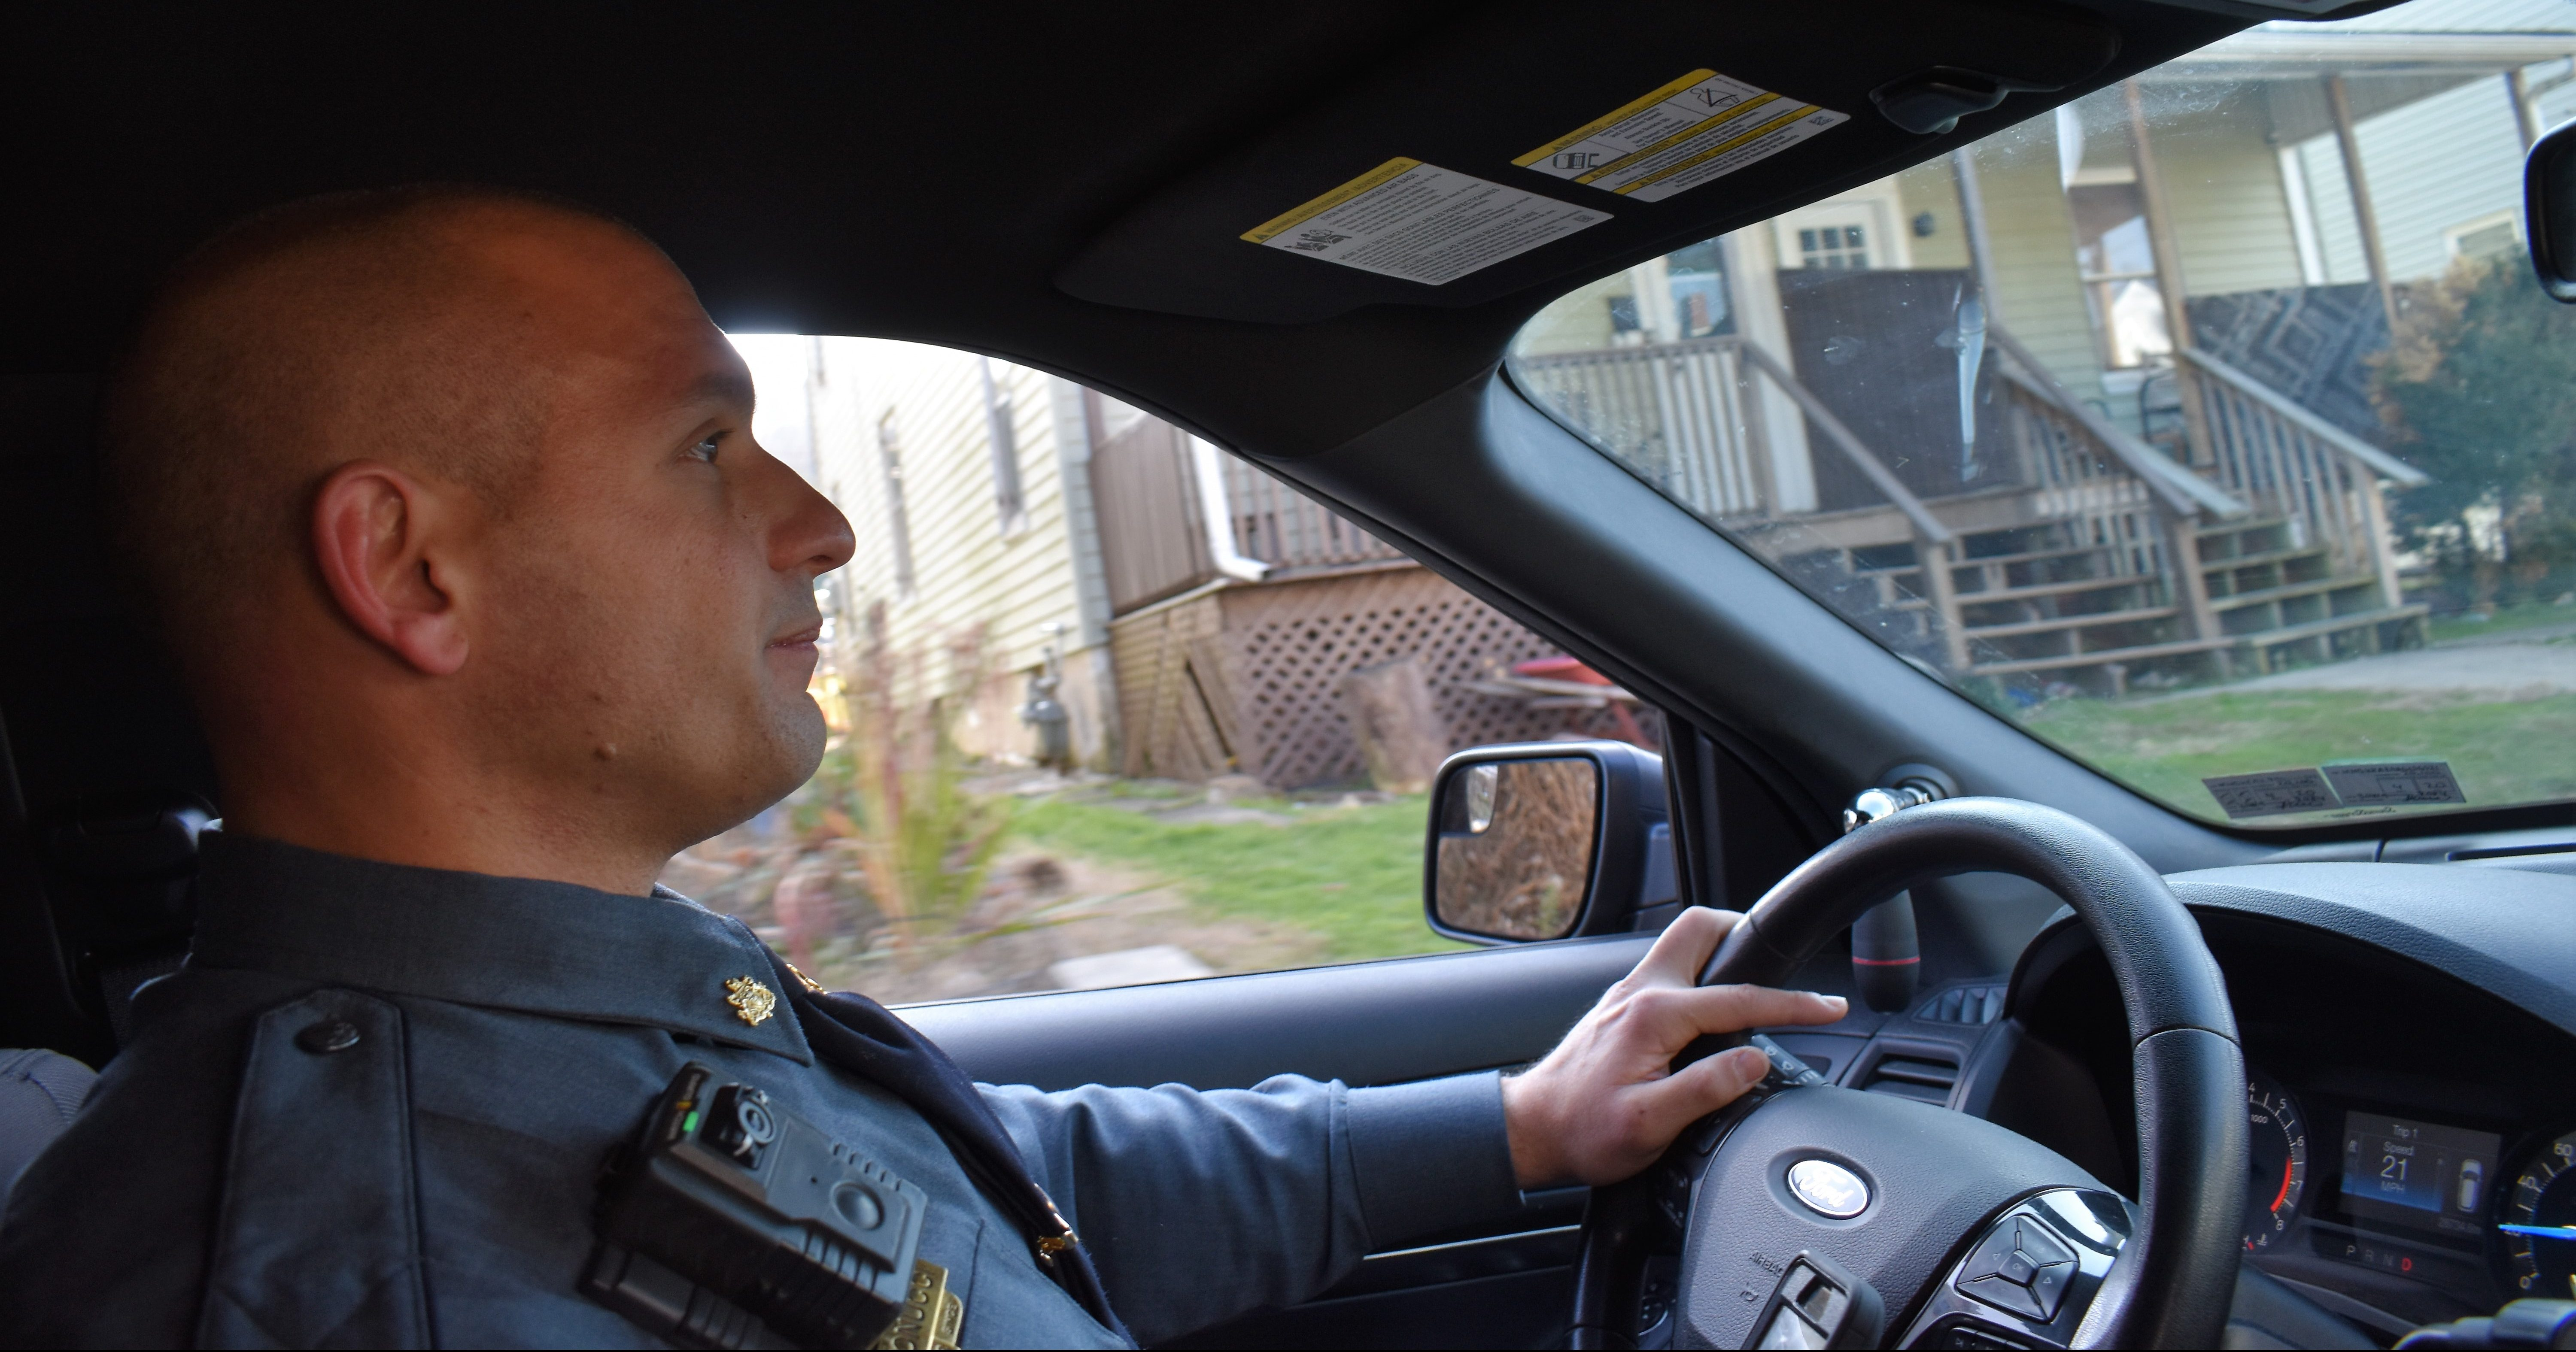 Coatesville police say 11 questions can reduce domestic violence. Why aren't more officers asking them?